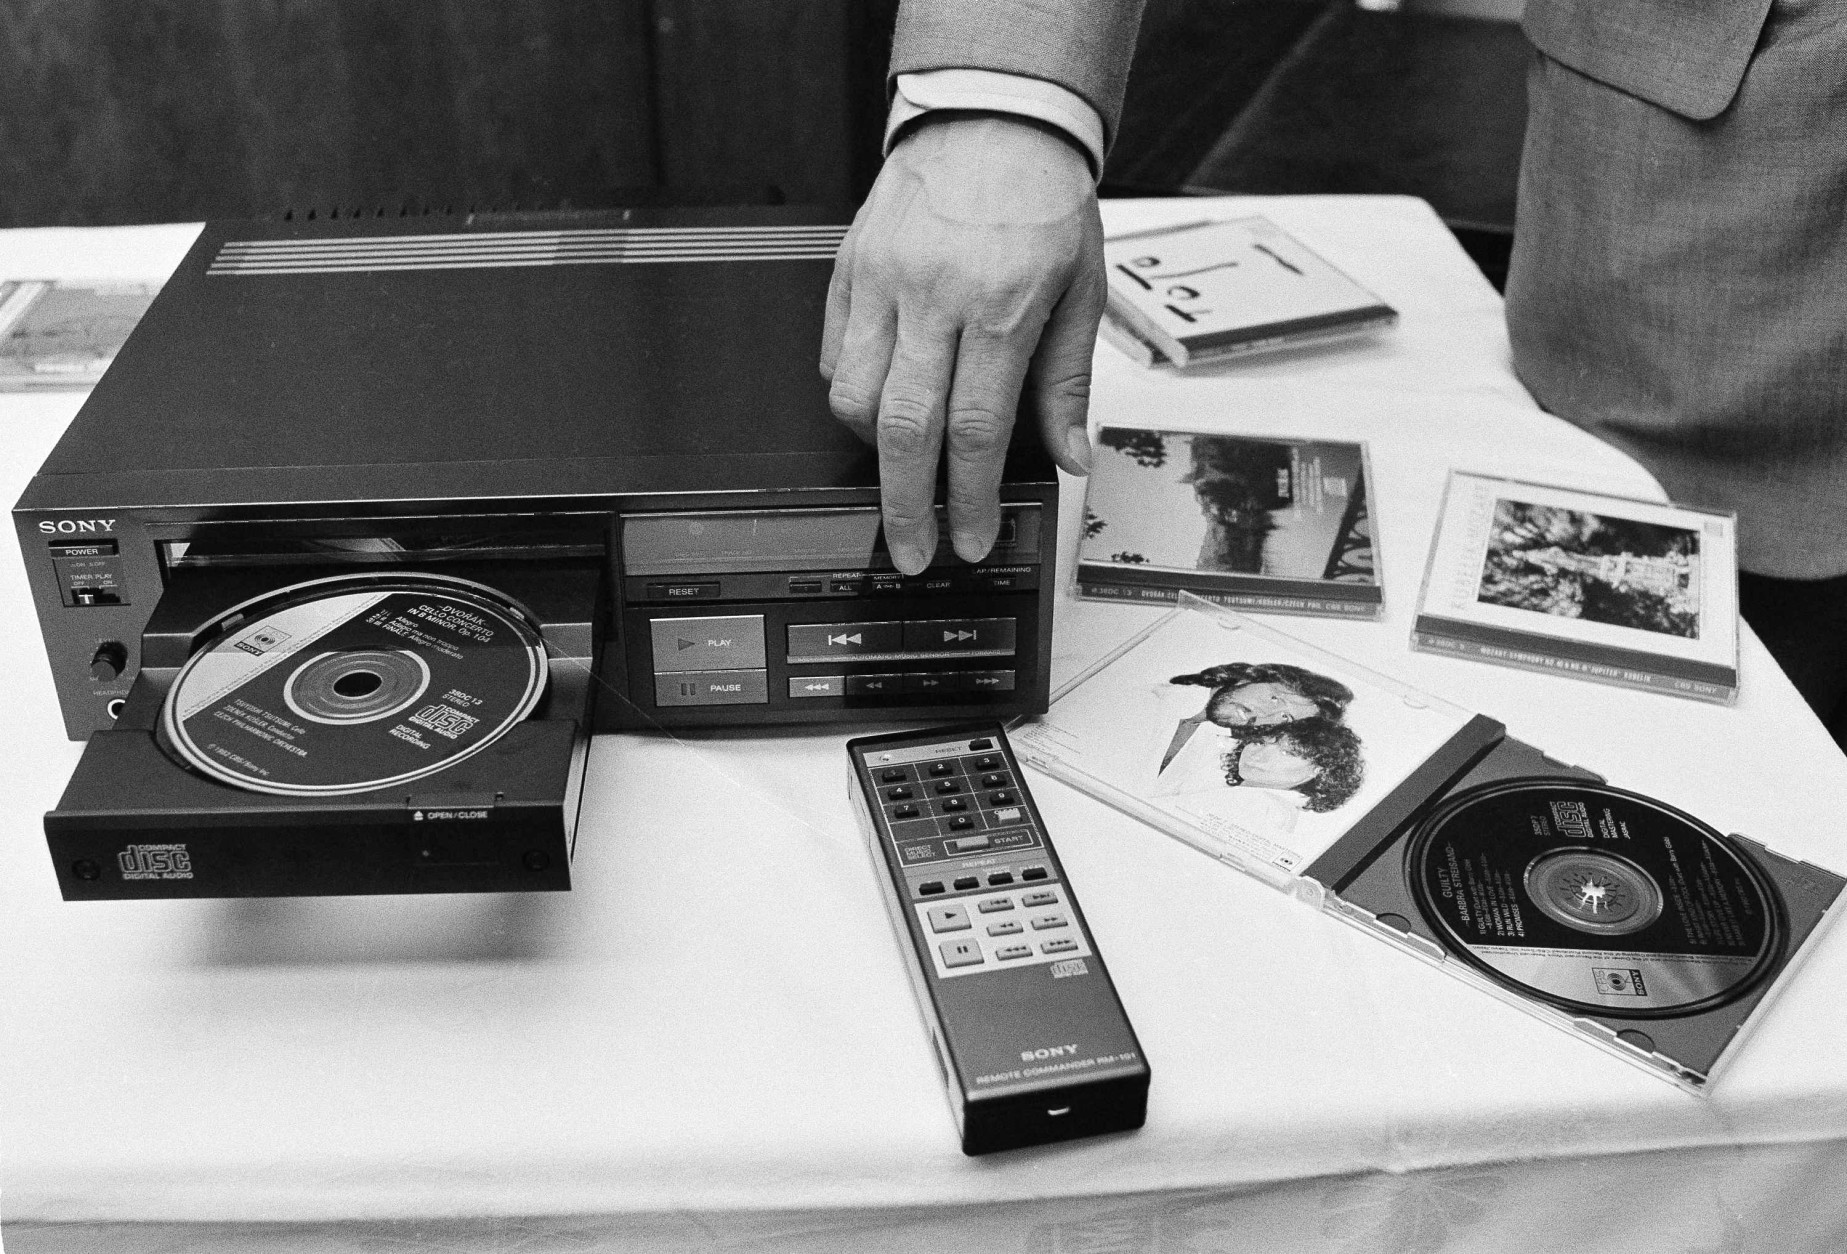 Sony's compact digital audio disc, 4.75-inches in diameter, is loaded into a laser disc cd player during a demonstration for the press in Tokyo, Japan, Aug. 31, 1982. The system, developed by Sony with the Dutch Philips, uses a laser beam to read the music on the compact disc, on which information is stored digitally. No conventional stylus is used. The manufacturer claims superior sound reproduction. It will appear on the Japanese market in October at about $700, an in the U.S. and Europe market a year later. In the foreground is a remote control unit for the player. (AP Photo/Katsumi Kasahara)